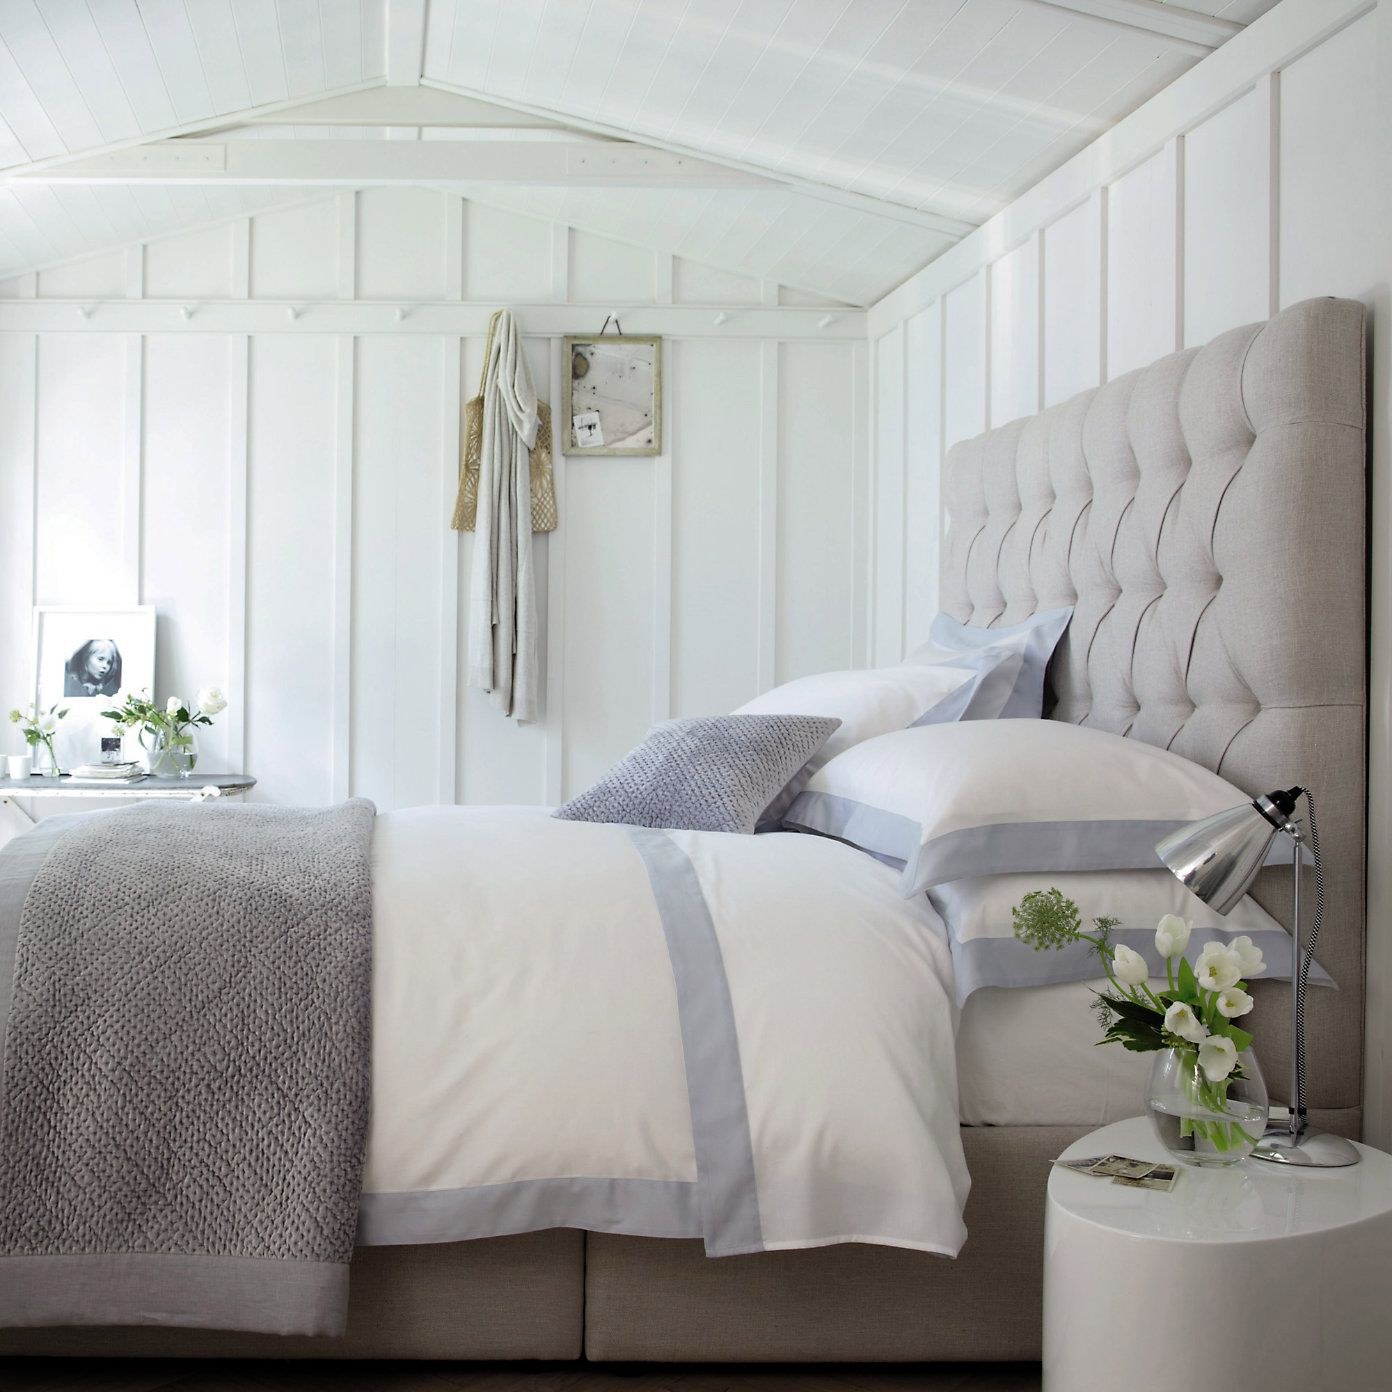 Genoa Bed Linen Collection From The White Company